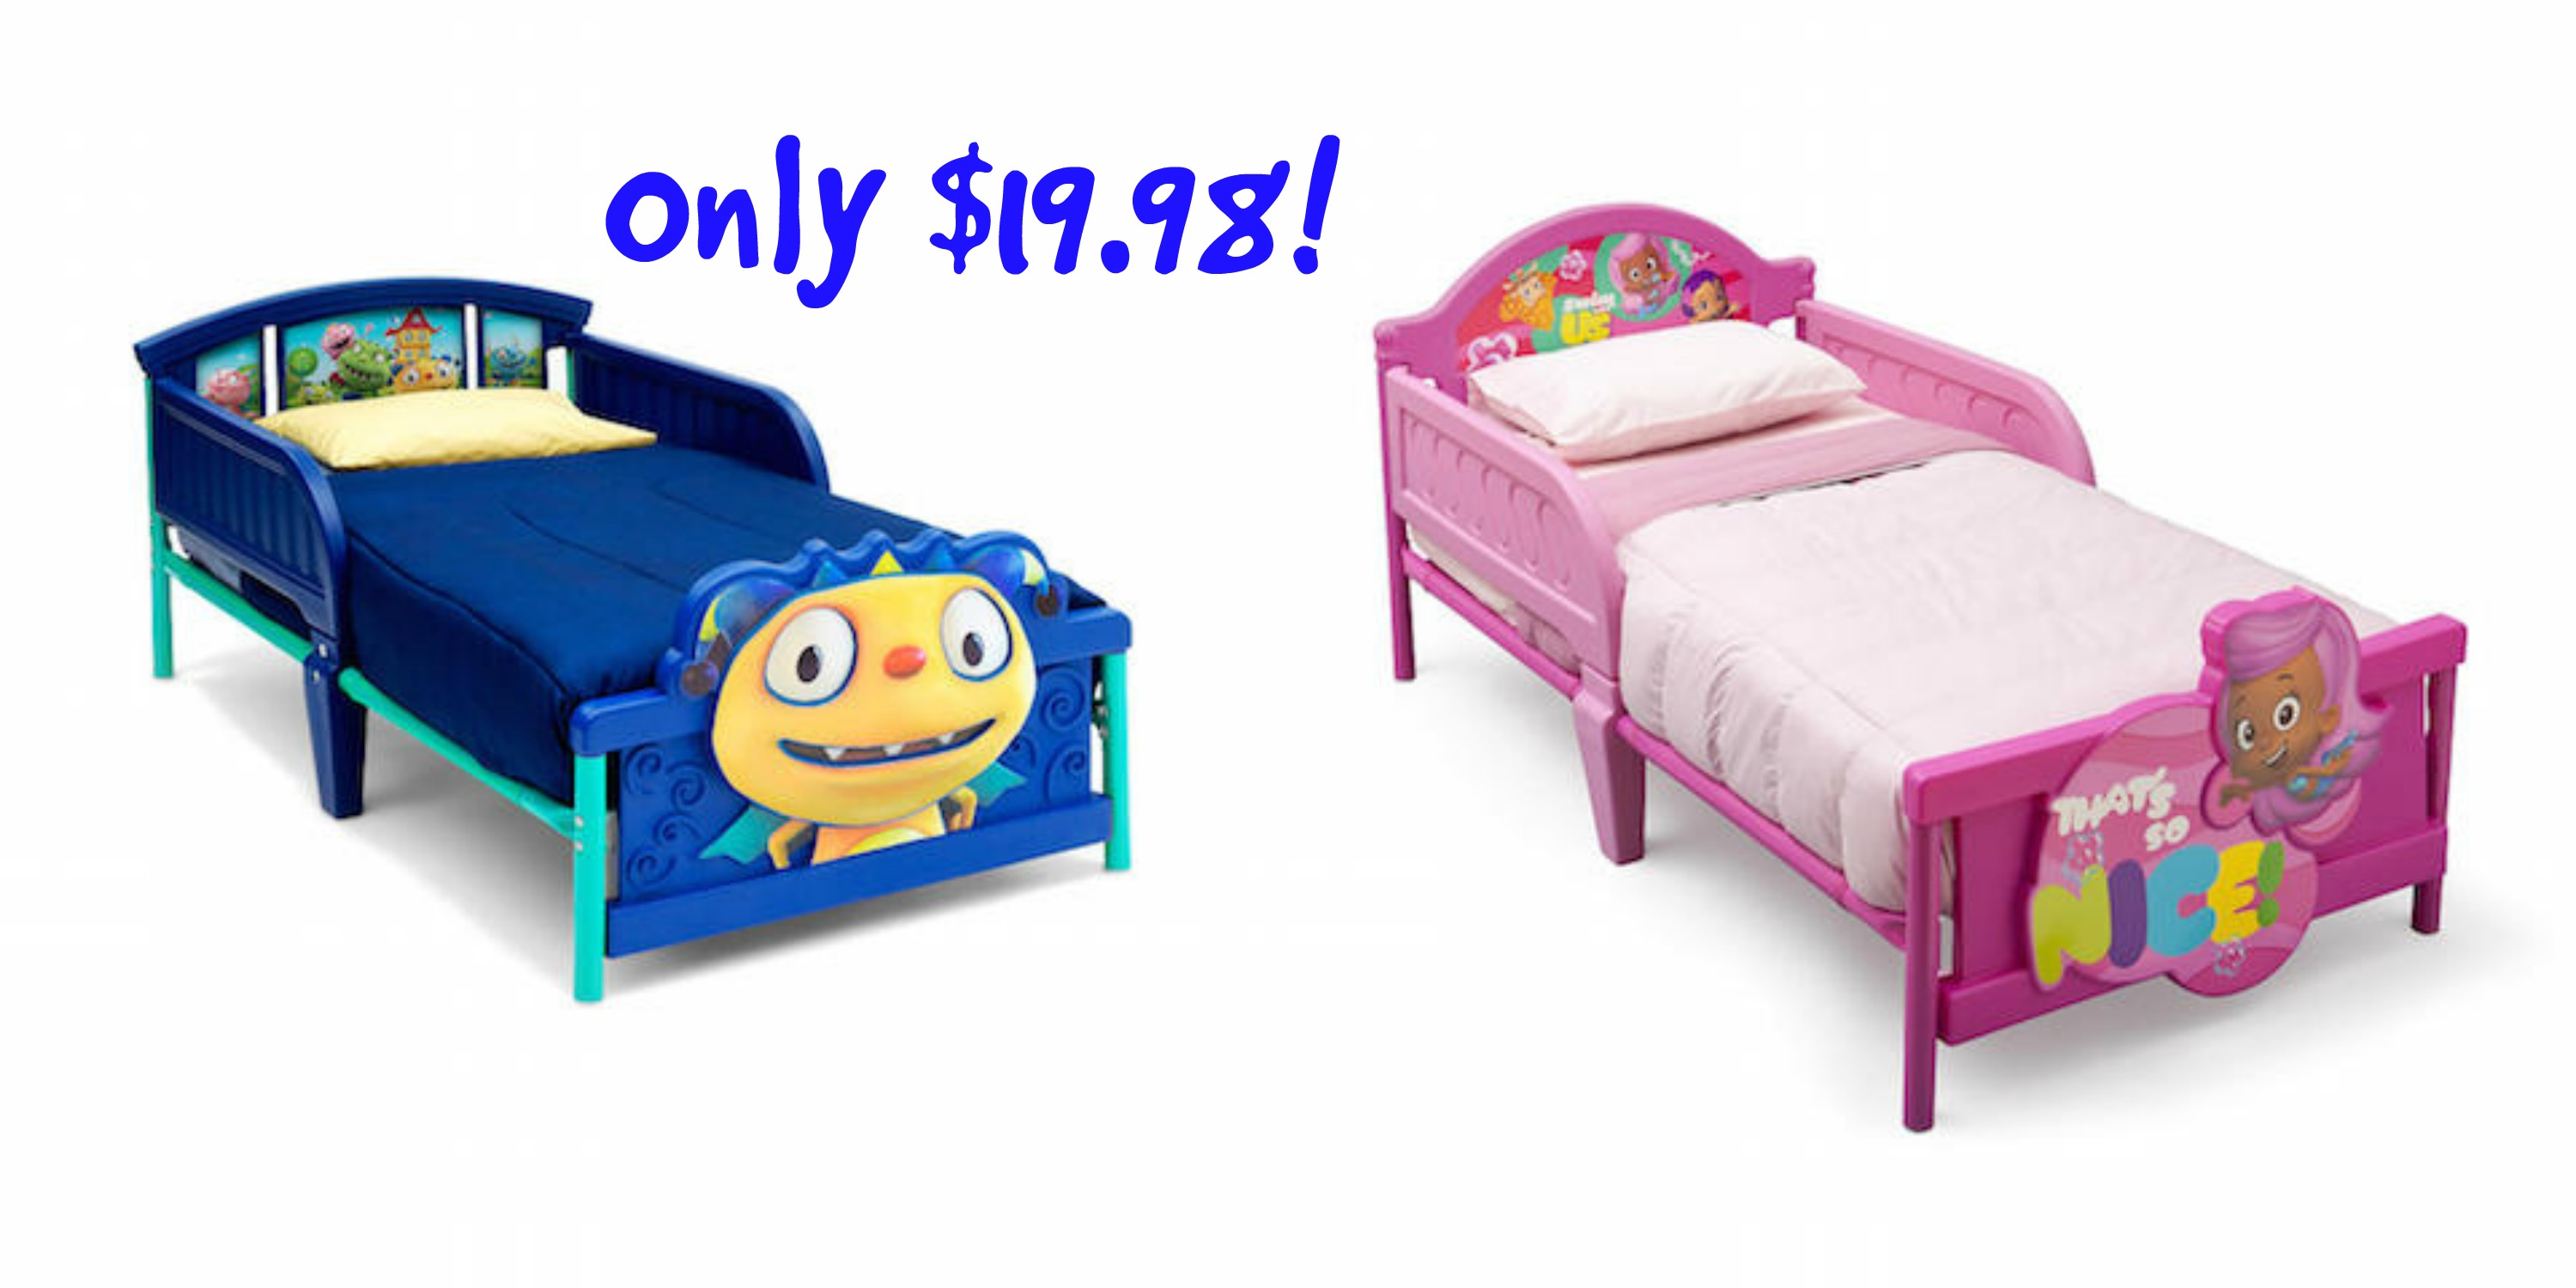 New  HOT Toddler Beds as Low as Reg Shipped at Toys R Us